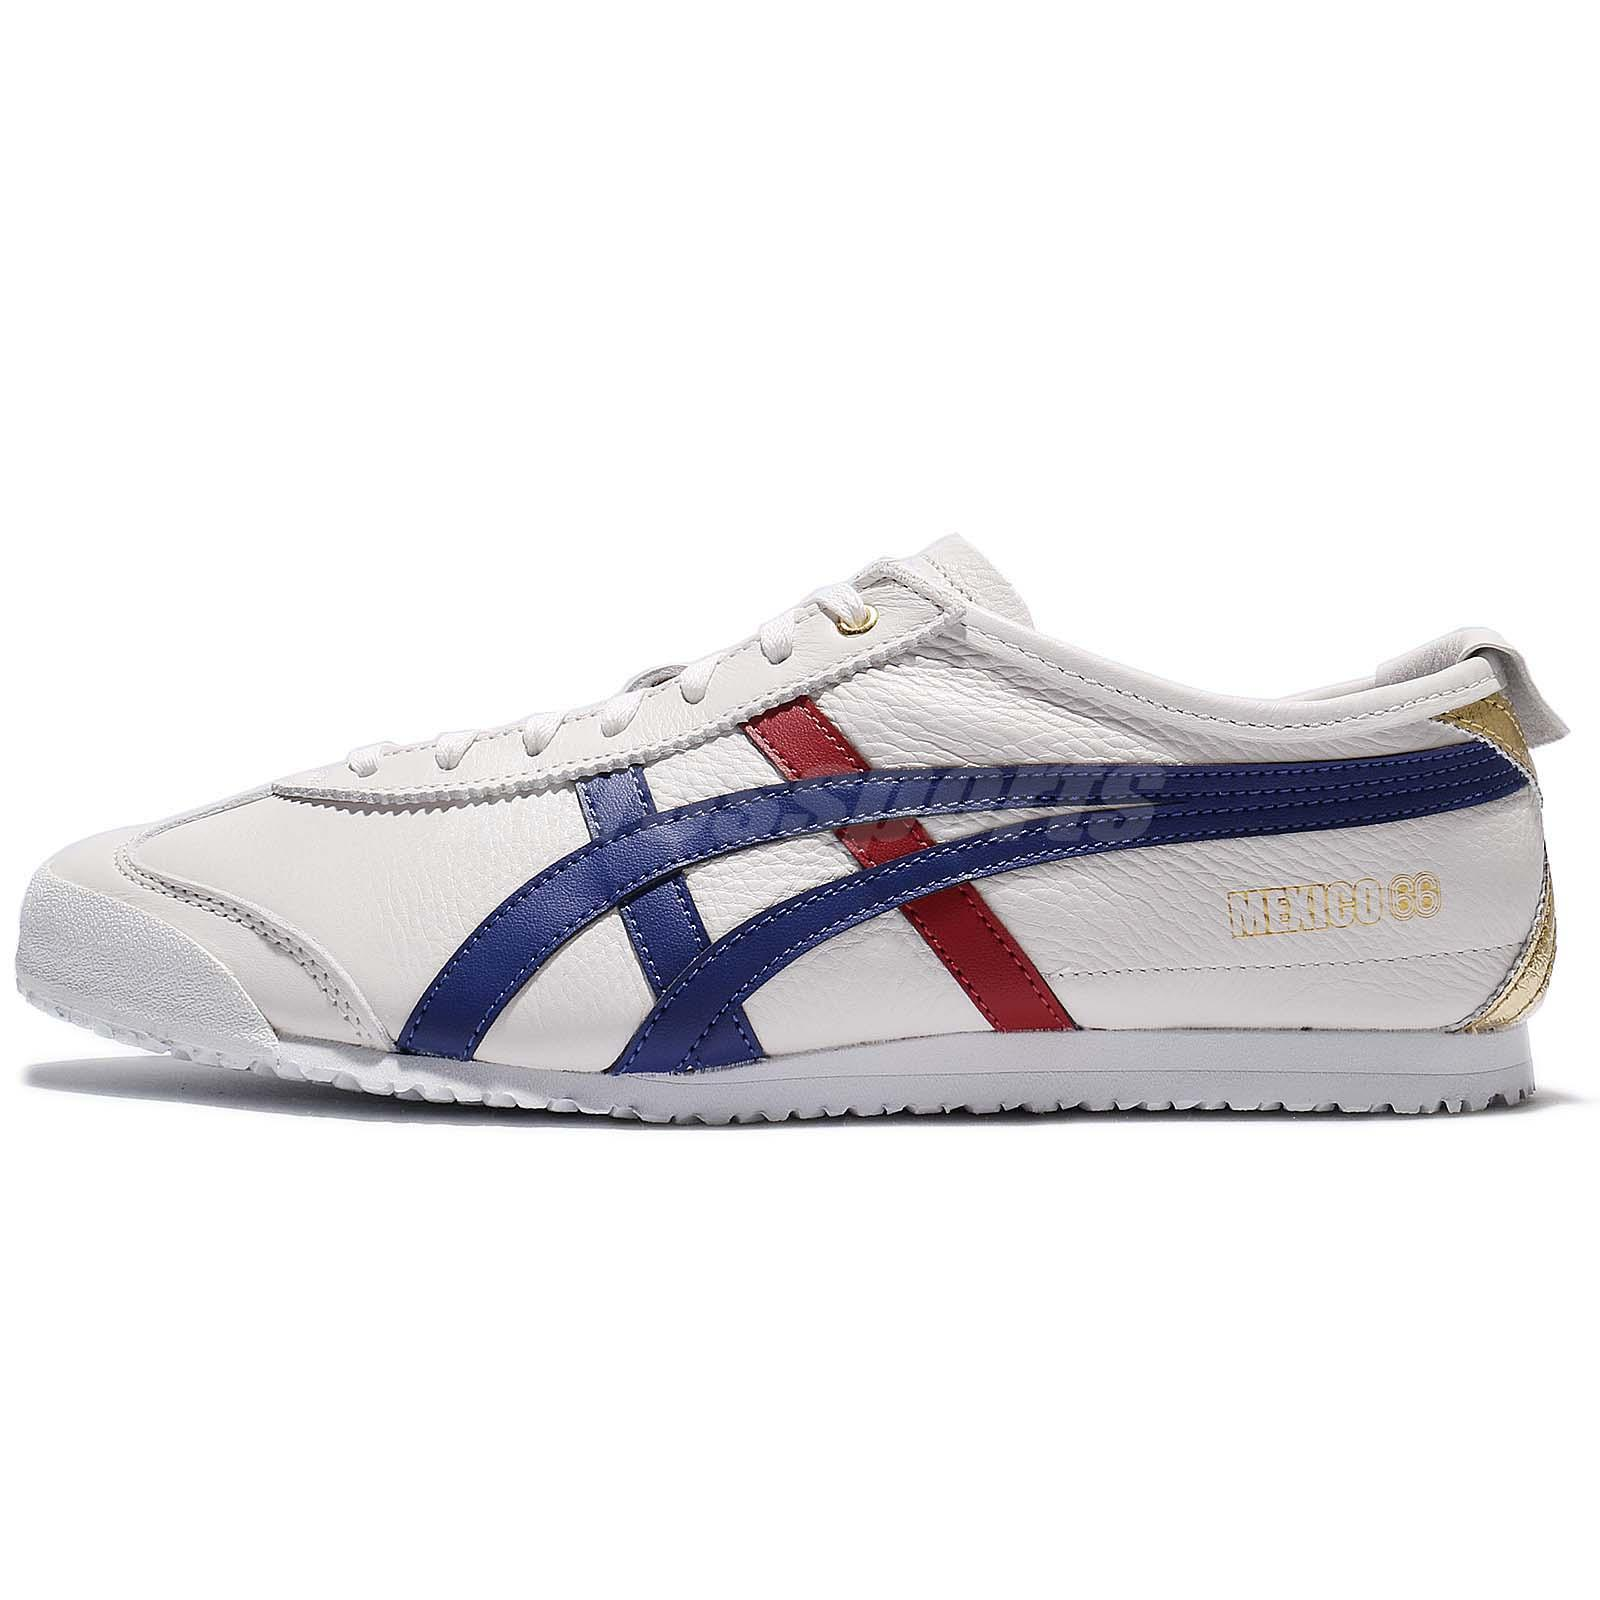 buy popular 303f7 ac64d Details about Asics Onitsuka Tiger Mexico 66 Limited Premium Pack Ivory  Navy Men D507L-0152